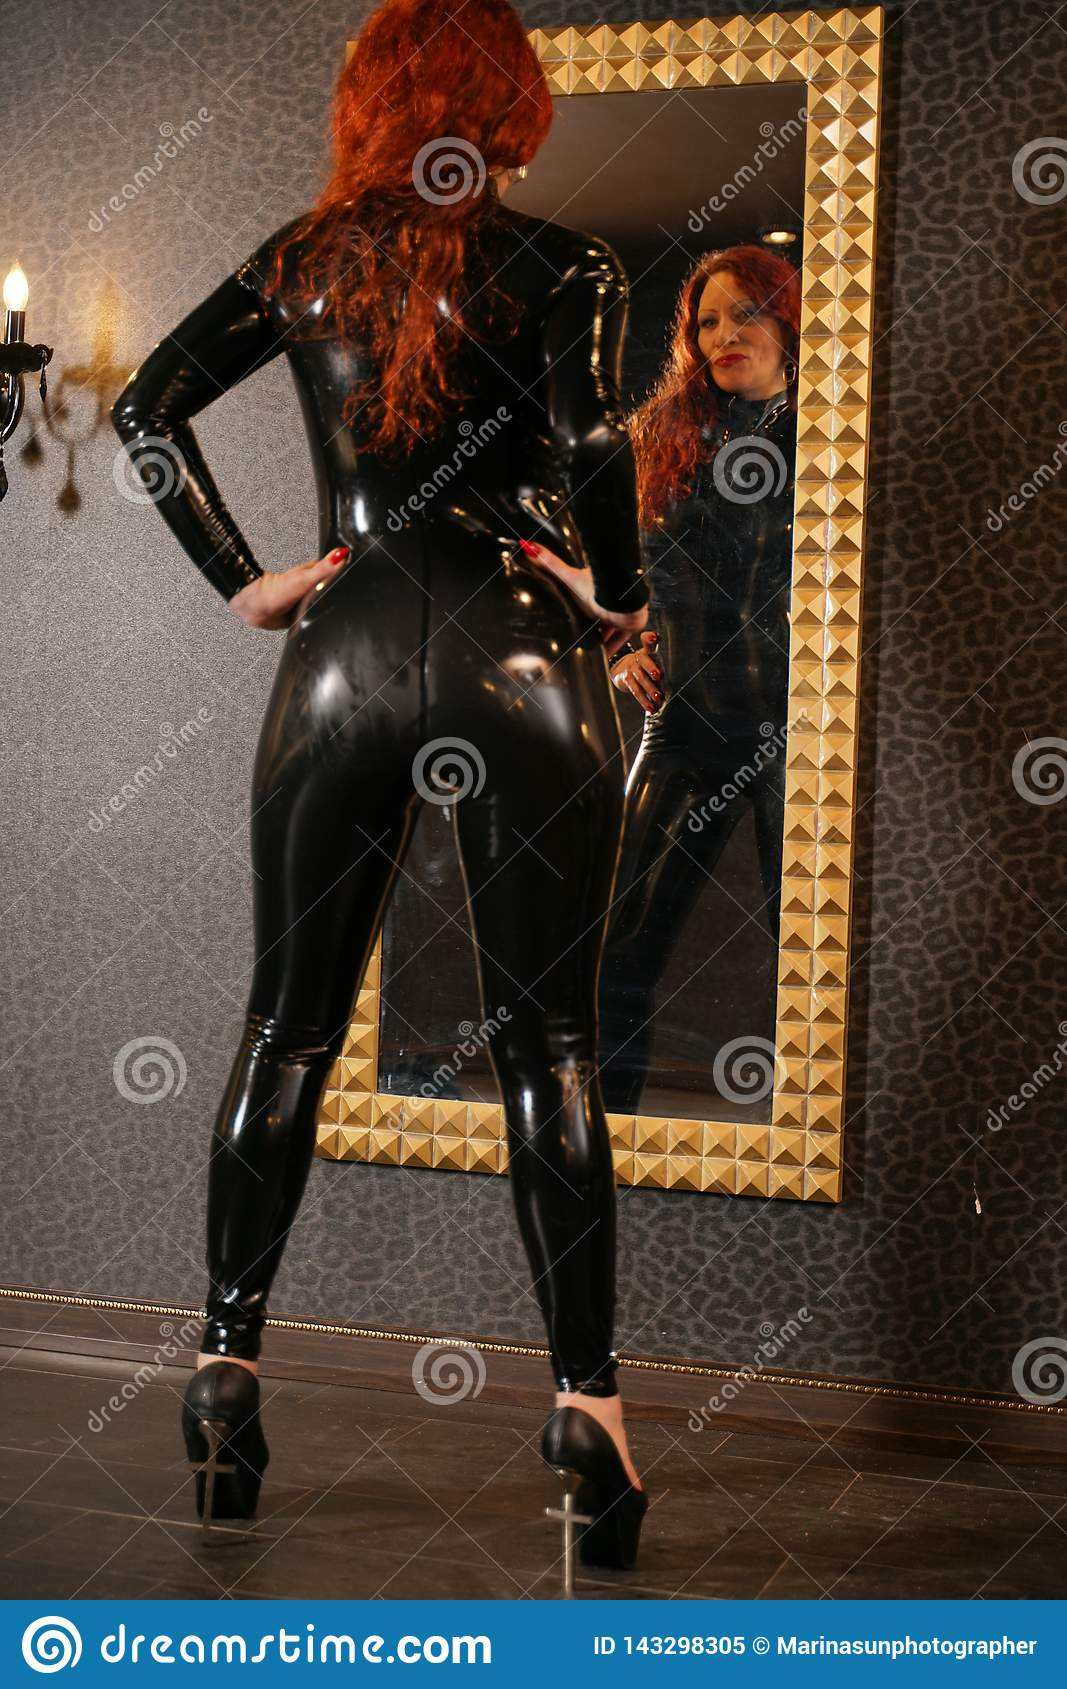 Sexual fetish redhead woman wearing black latex rubber catsuit and looking at the mirror in dark room